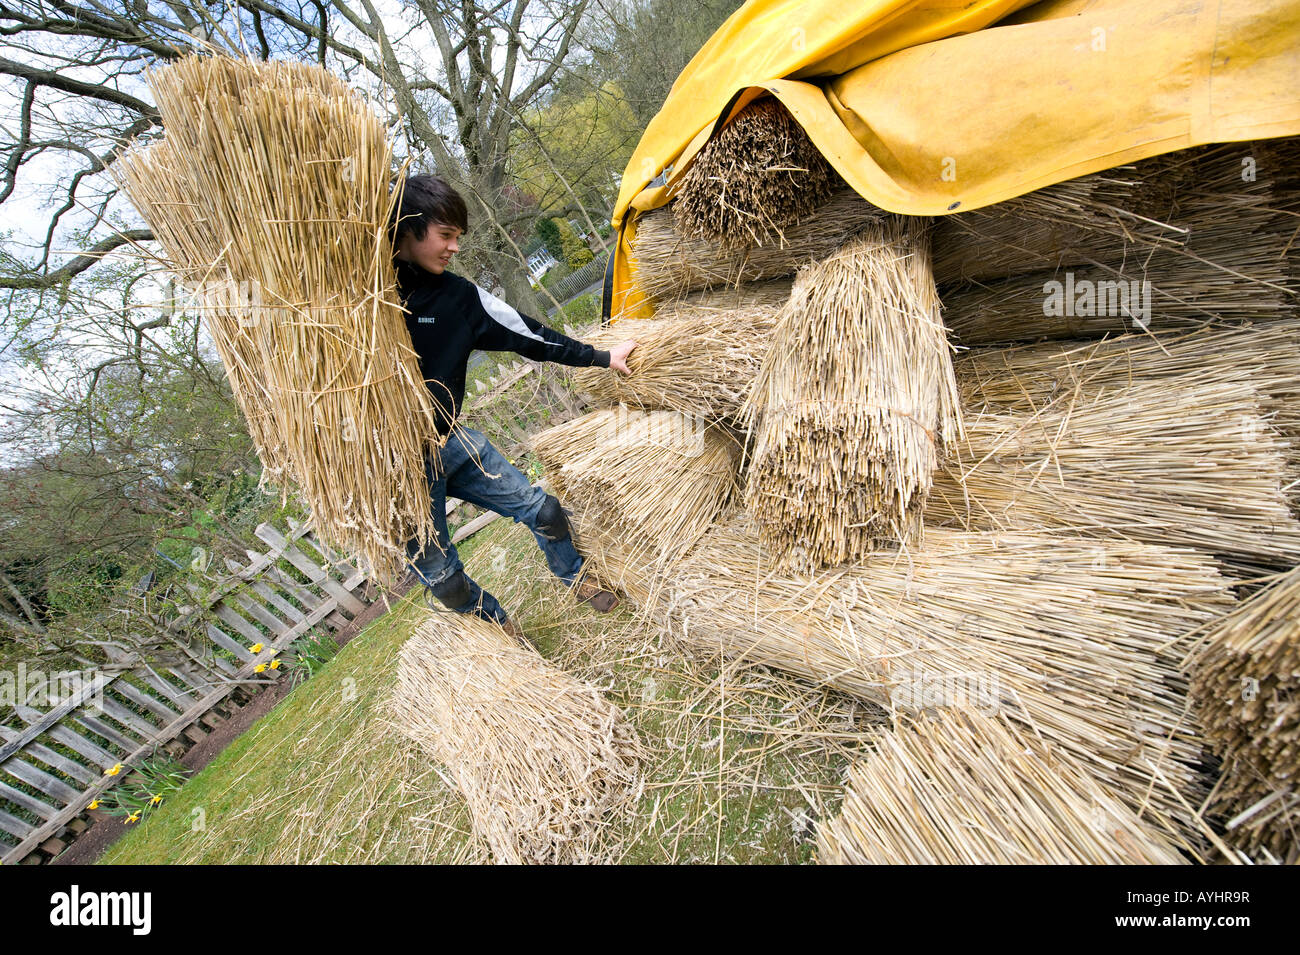 Apprentice Thatcher Jonty Jackson lifts bundles of Thatching Straw, before taking them onto roof of the nearby cottage Stock Photo